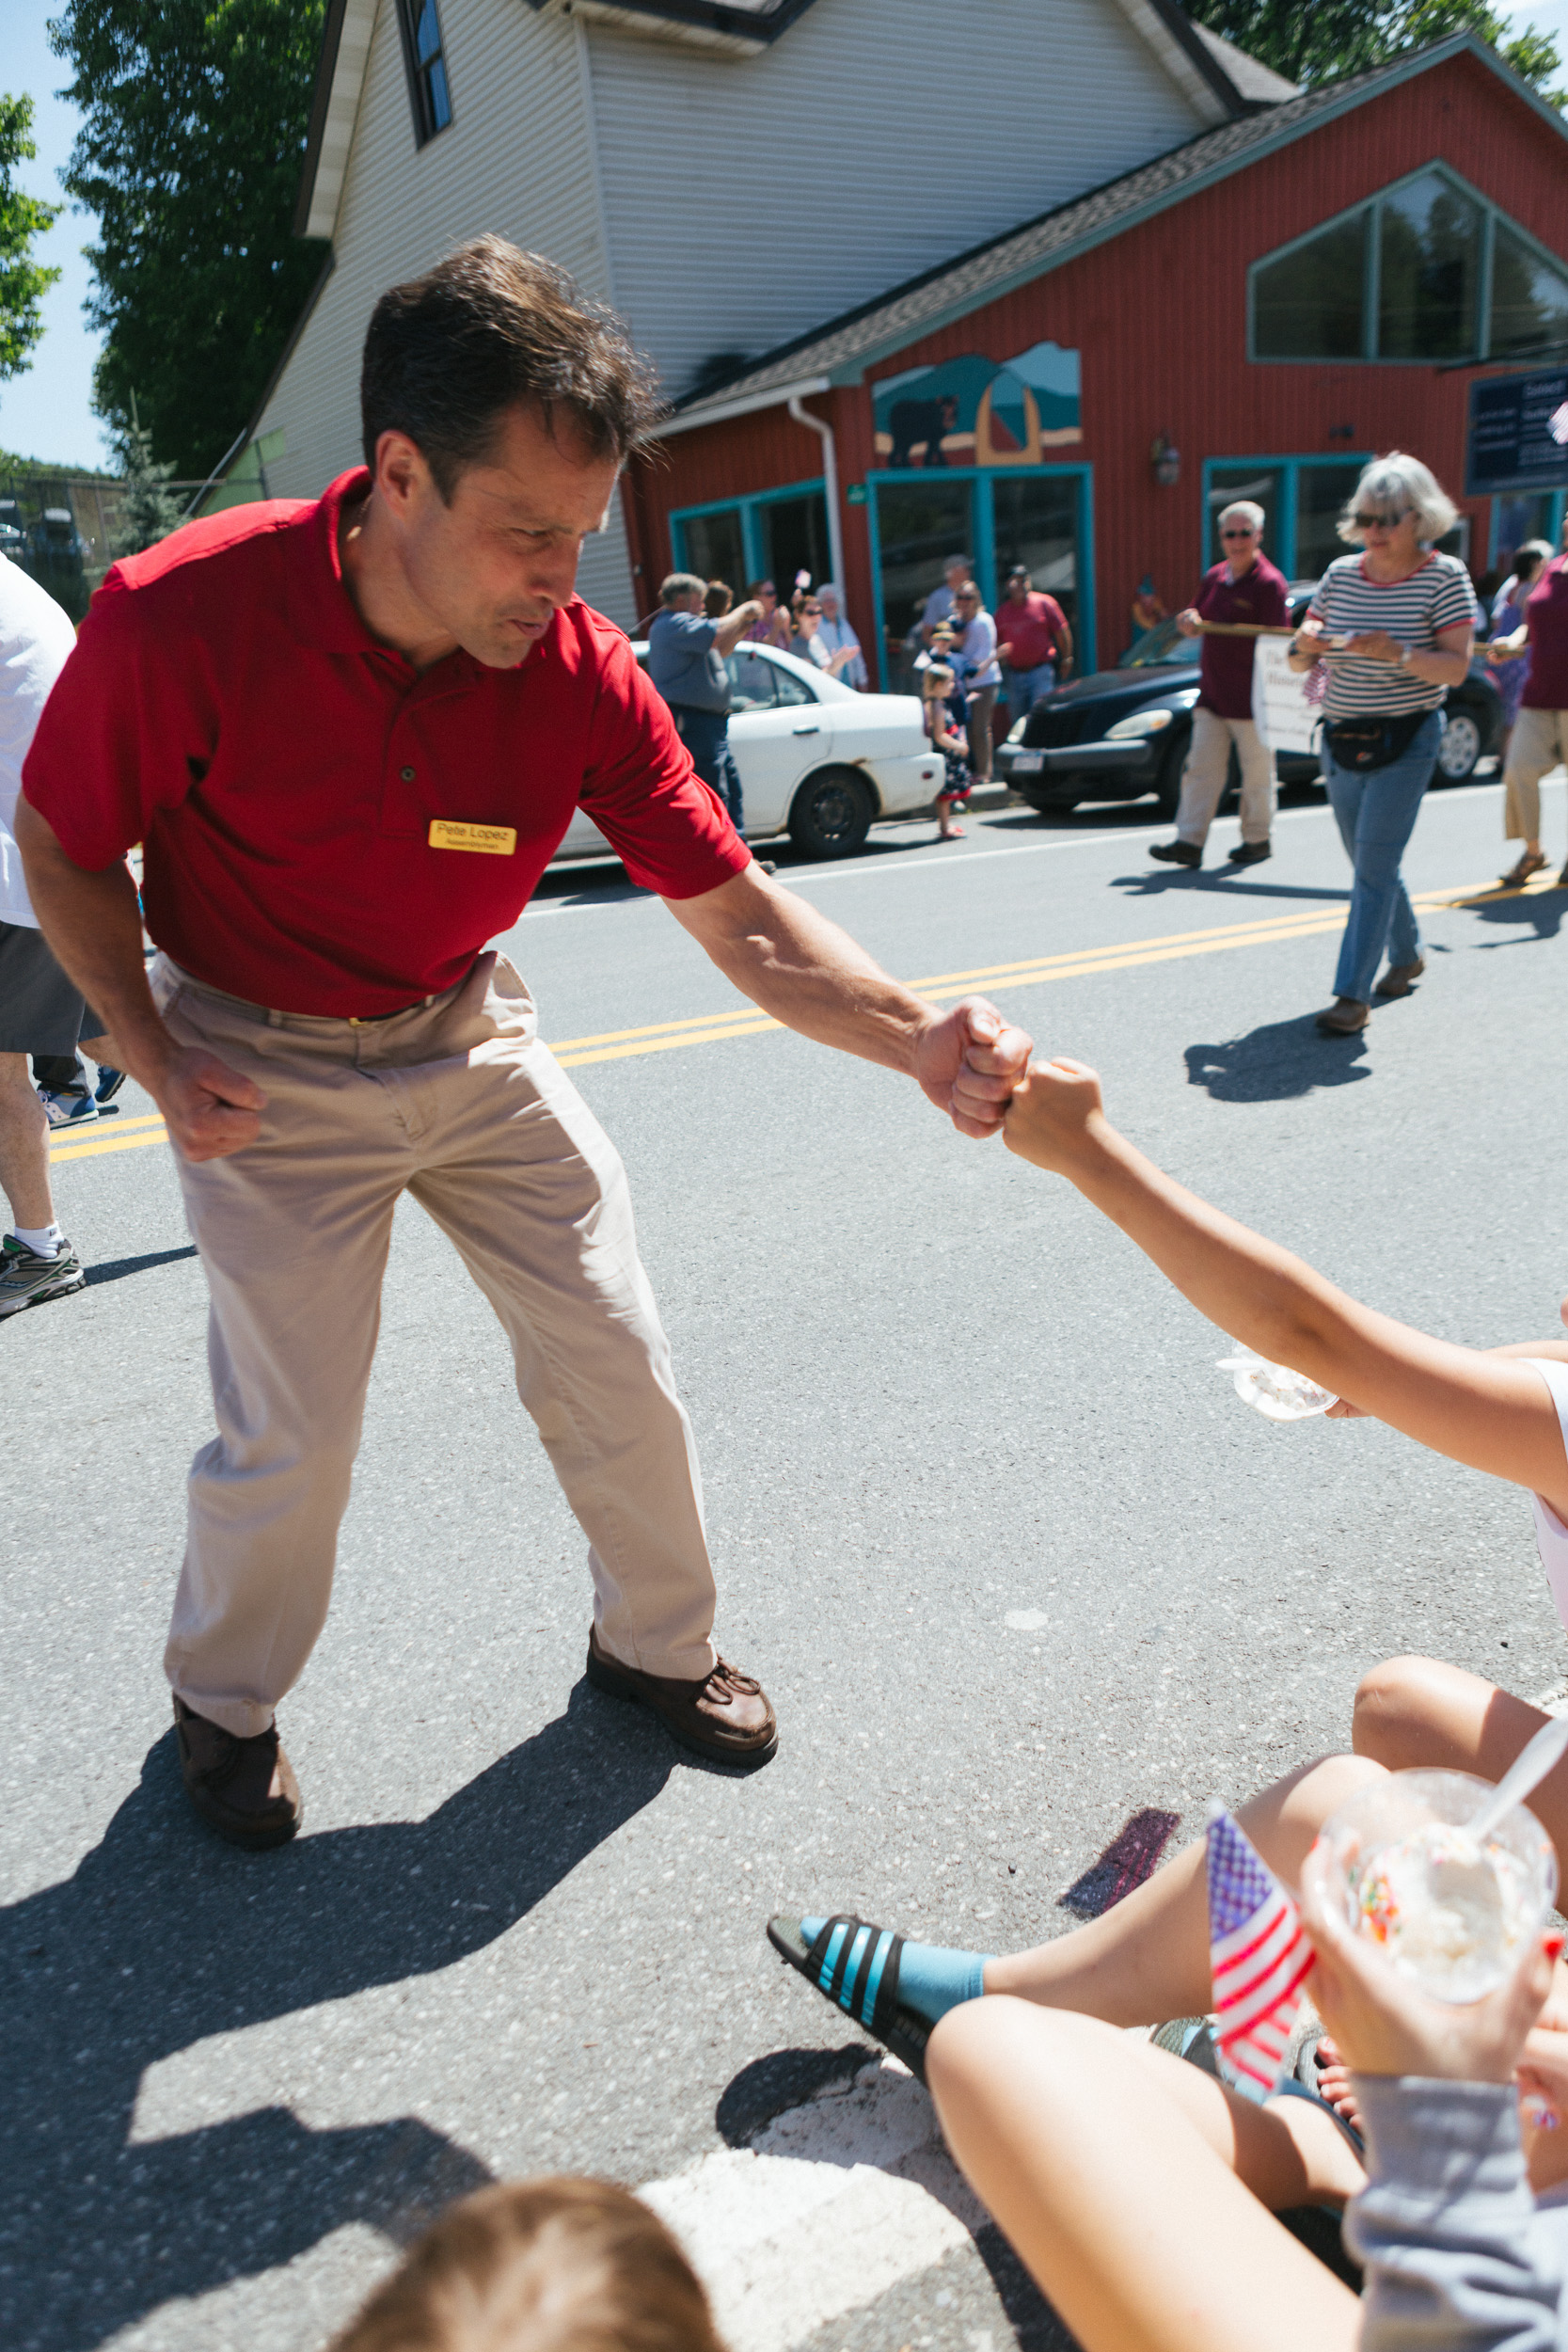 A politician greets children with a fist bump at the Tannersville Parade.jpg